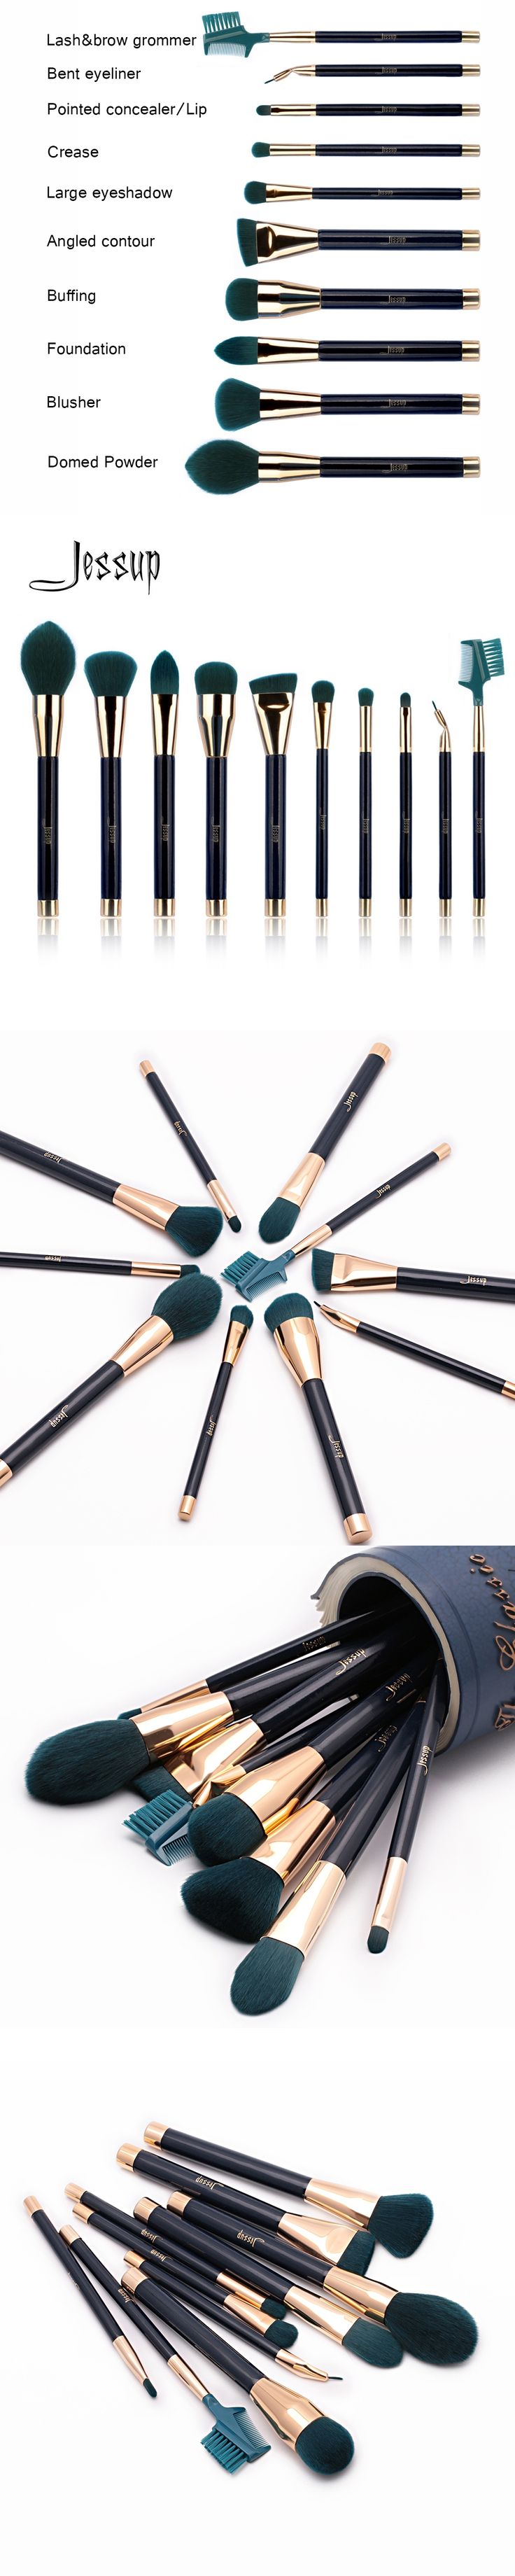 Jessup Brushes 10pcs Make-up Brushes Sets Synthetic Hair Brush Foundation Powder Lash Brow Grommer Cosmetics Tools T252